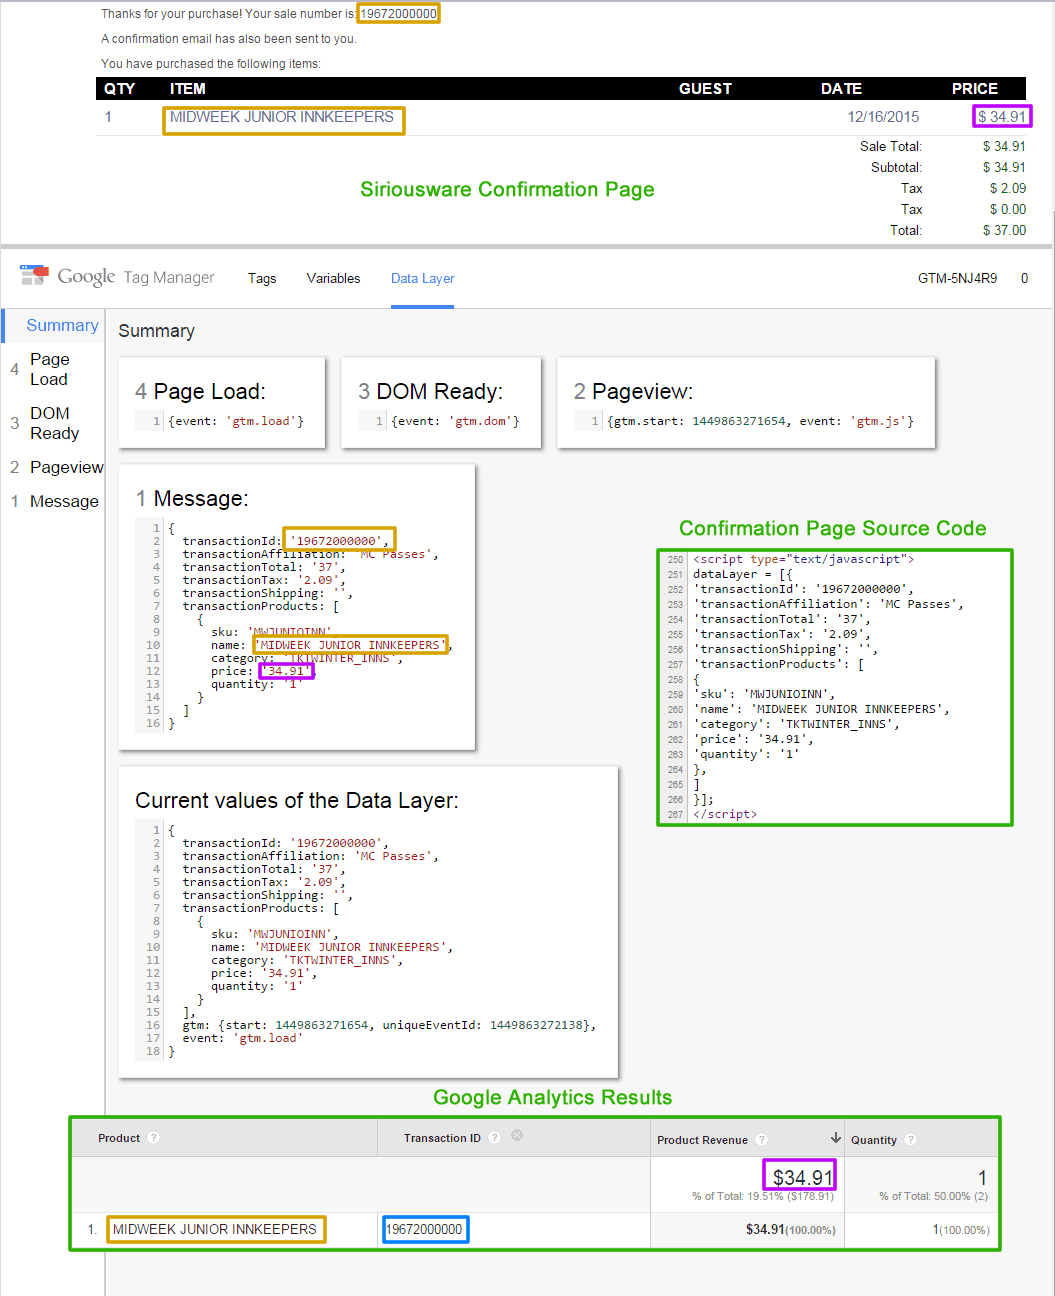 Siriousware confirmation page with GTM dataLayer, dataLayer from the page source code, and the GA results of the transaction.